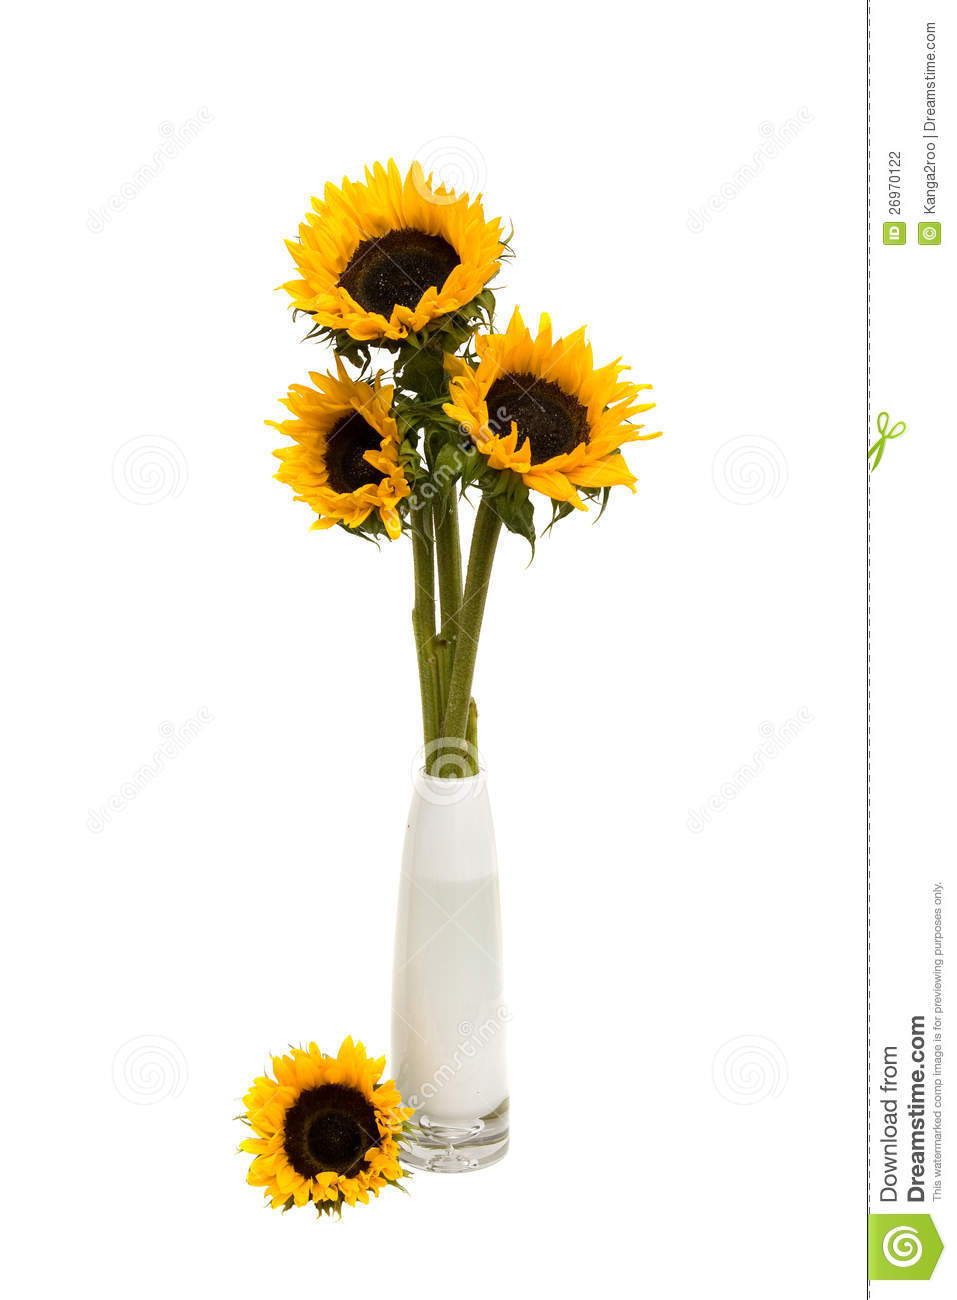 Sunflower Bouquet In White Vase Stock Photo Image 26970122